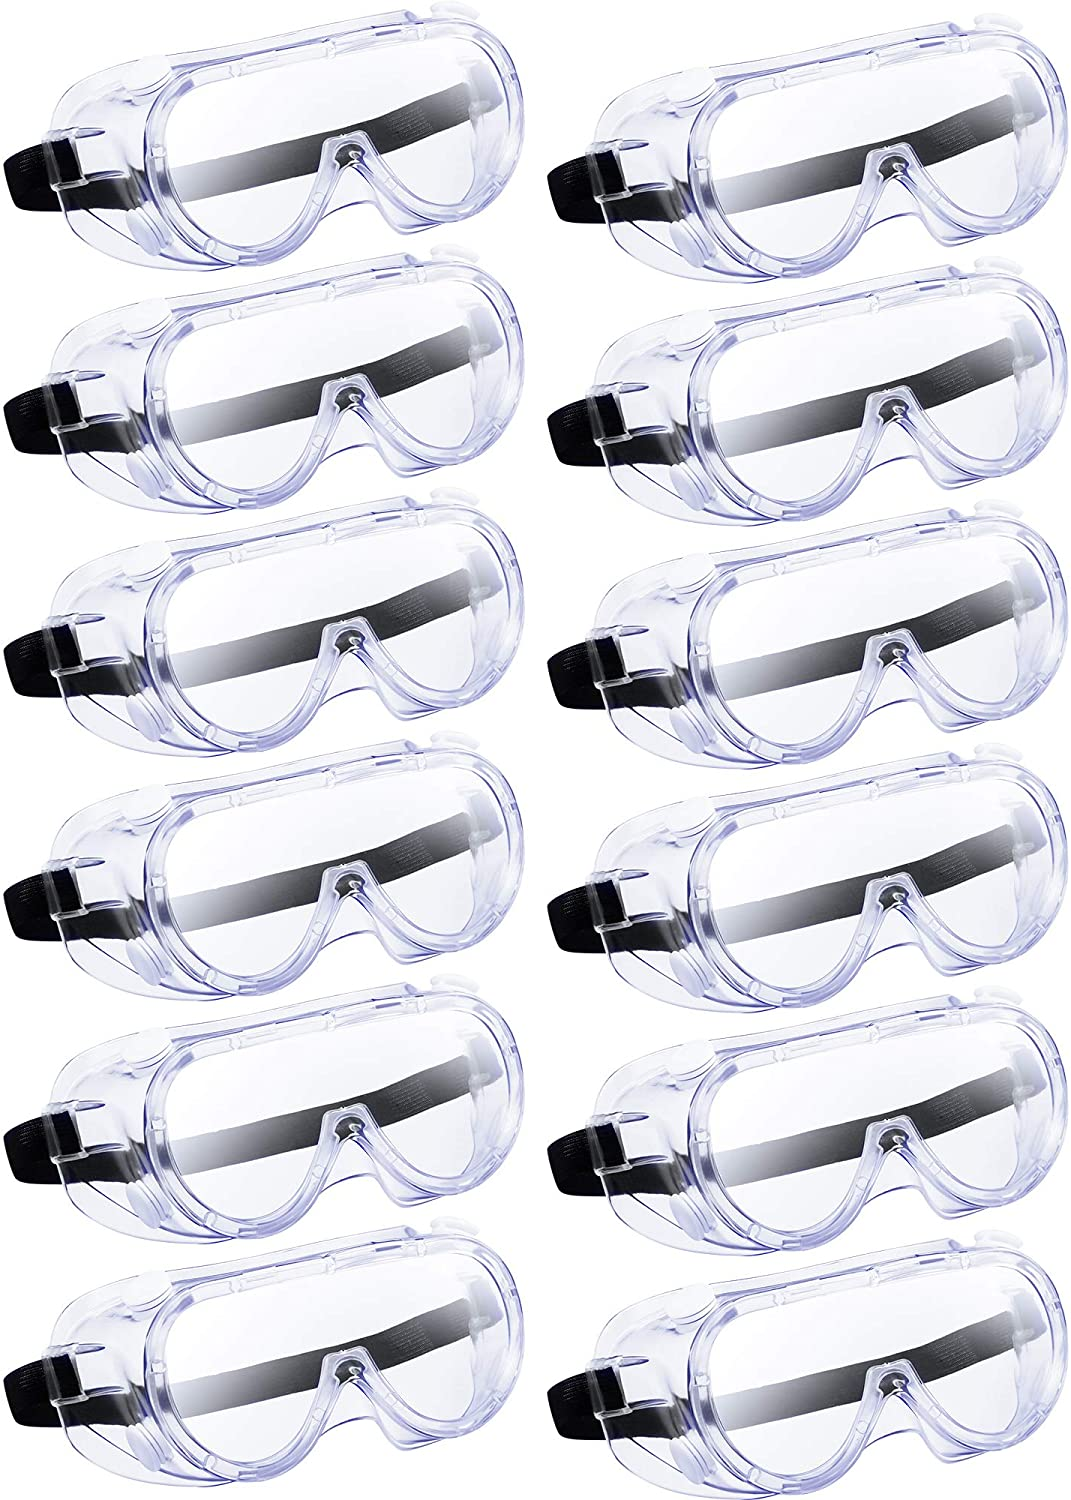 Traditional Technician Safety Goggle Soft Crystal Eye Protection Adjustable Splash Goggles Wide-Vision Safety Goggles with Elastic Headband for Construction, Lab Work, DIY Project (12)